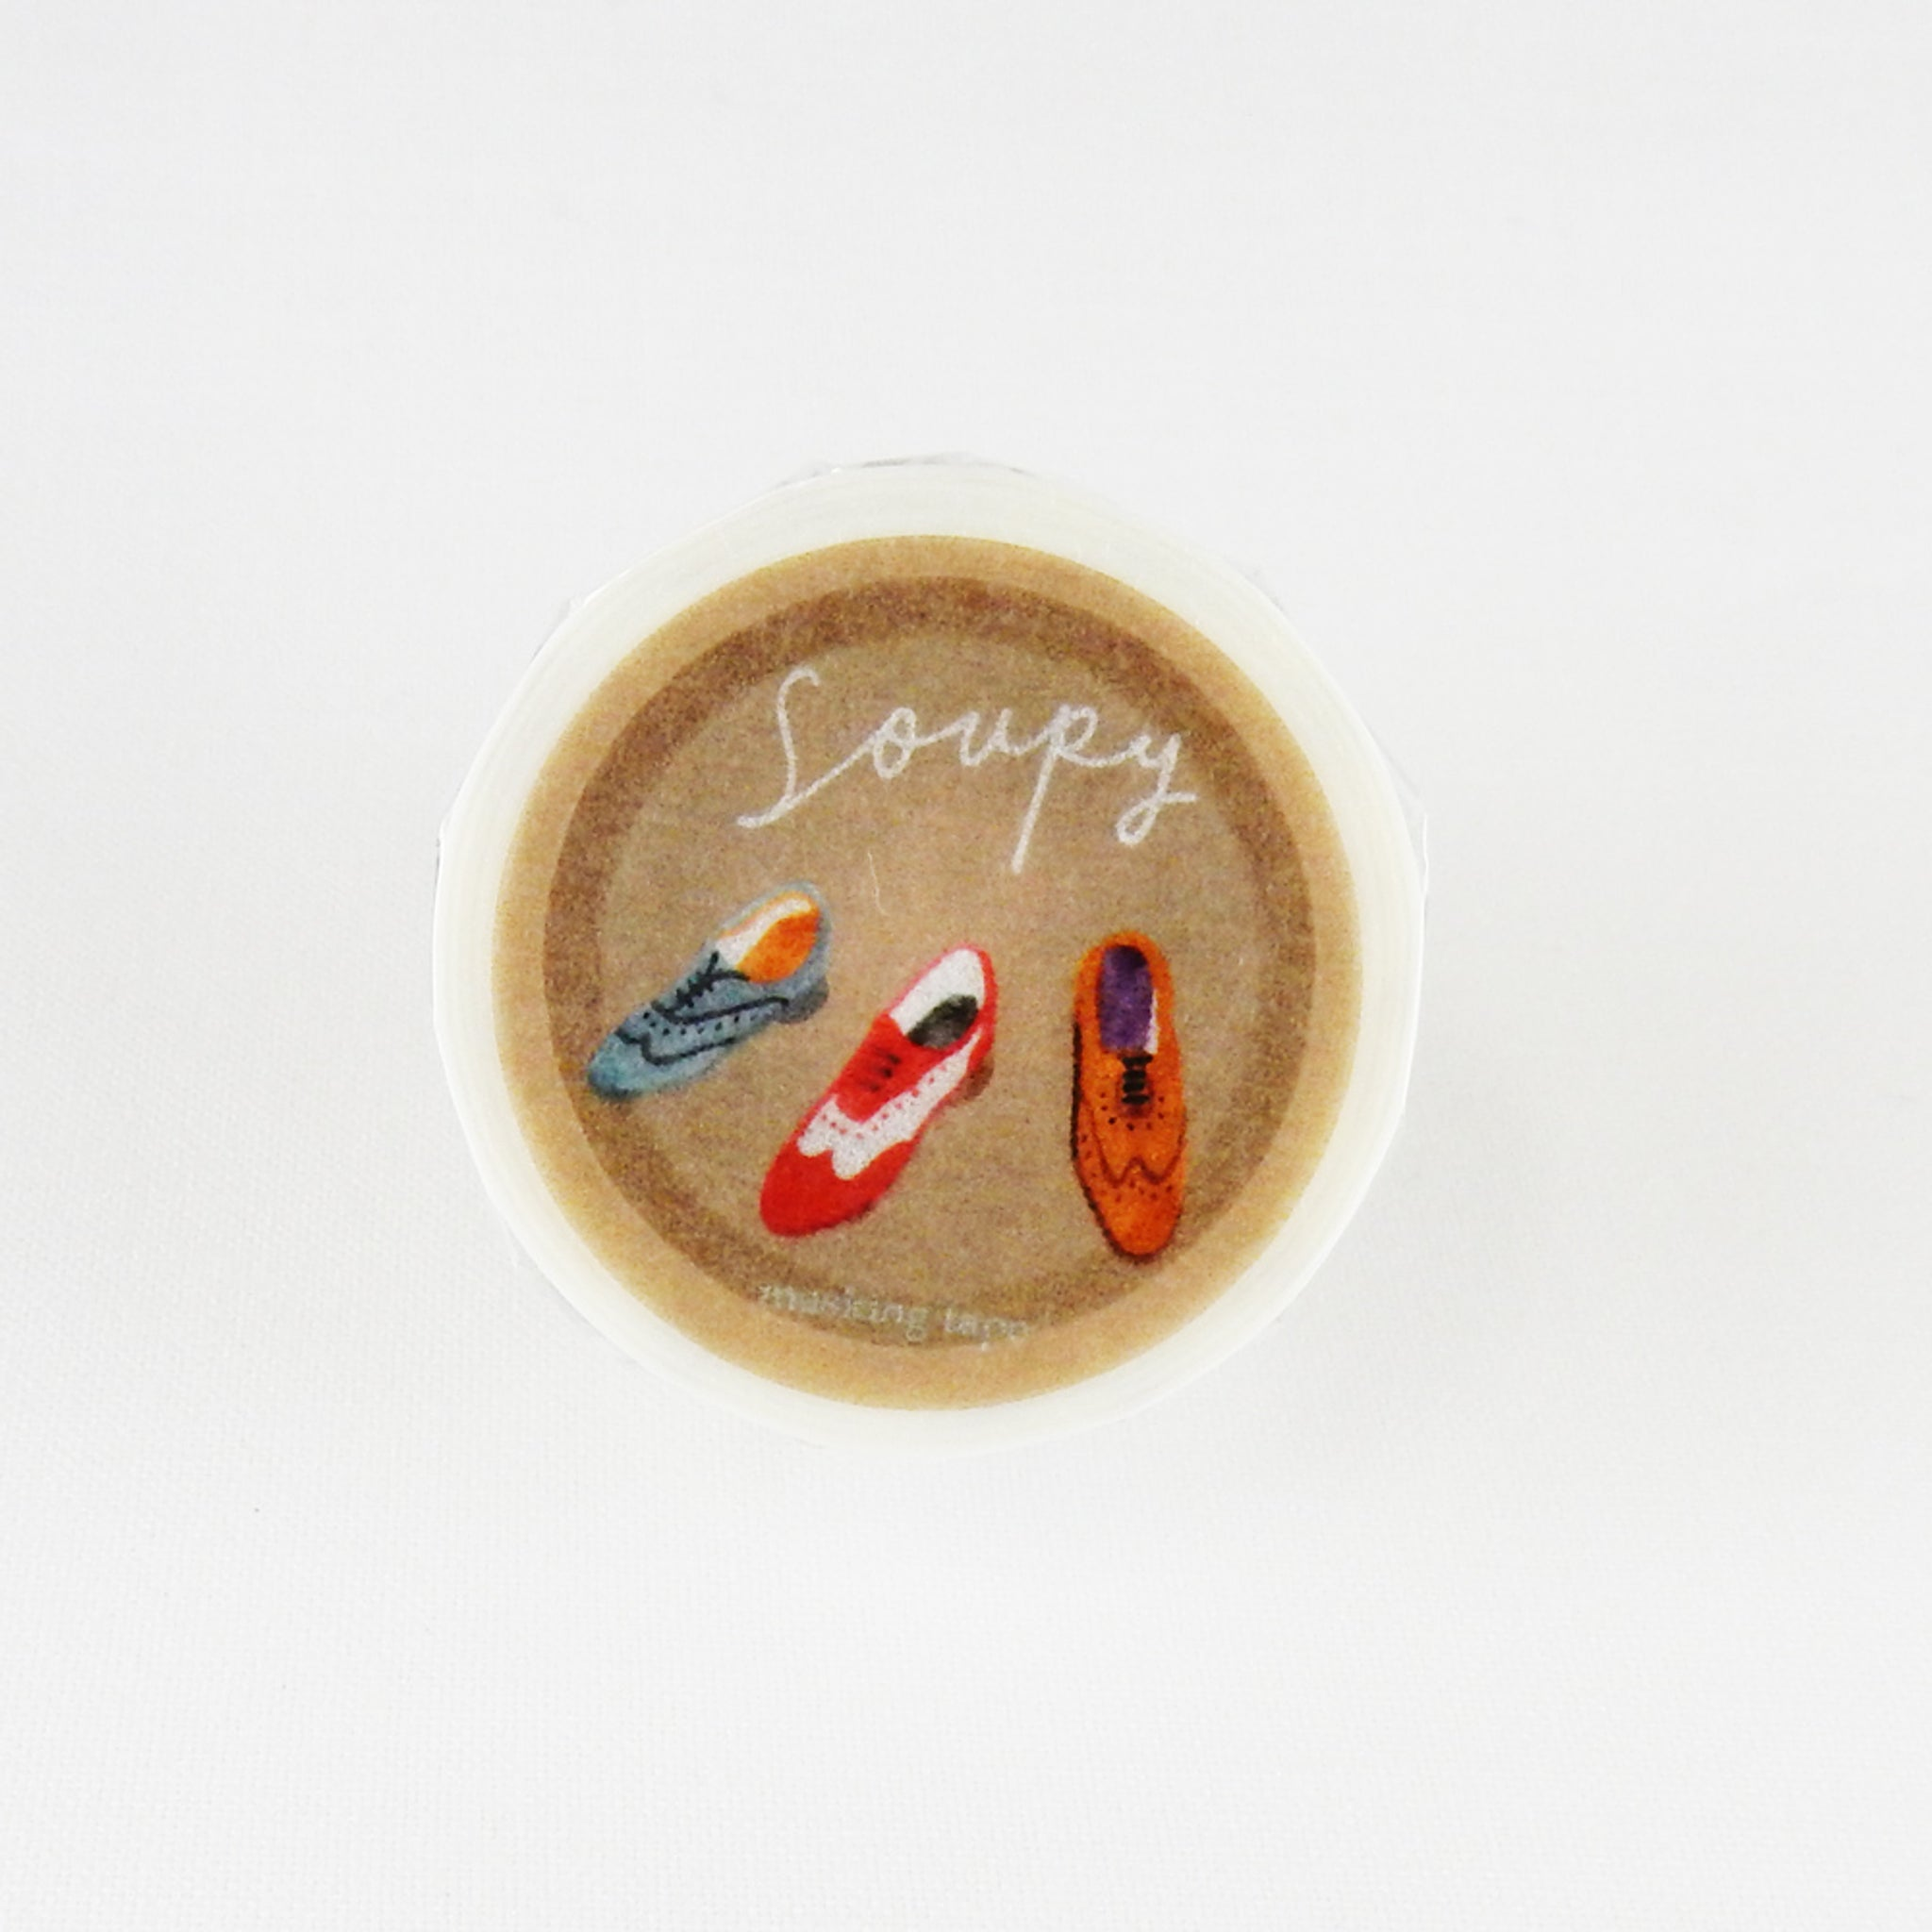 Round Top x Soupy Tang Shoes Washi Tape